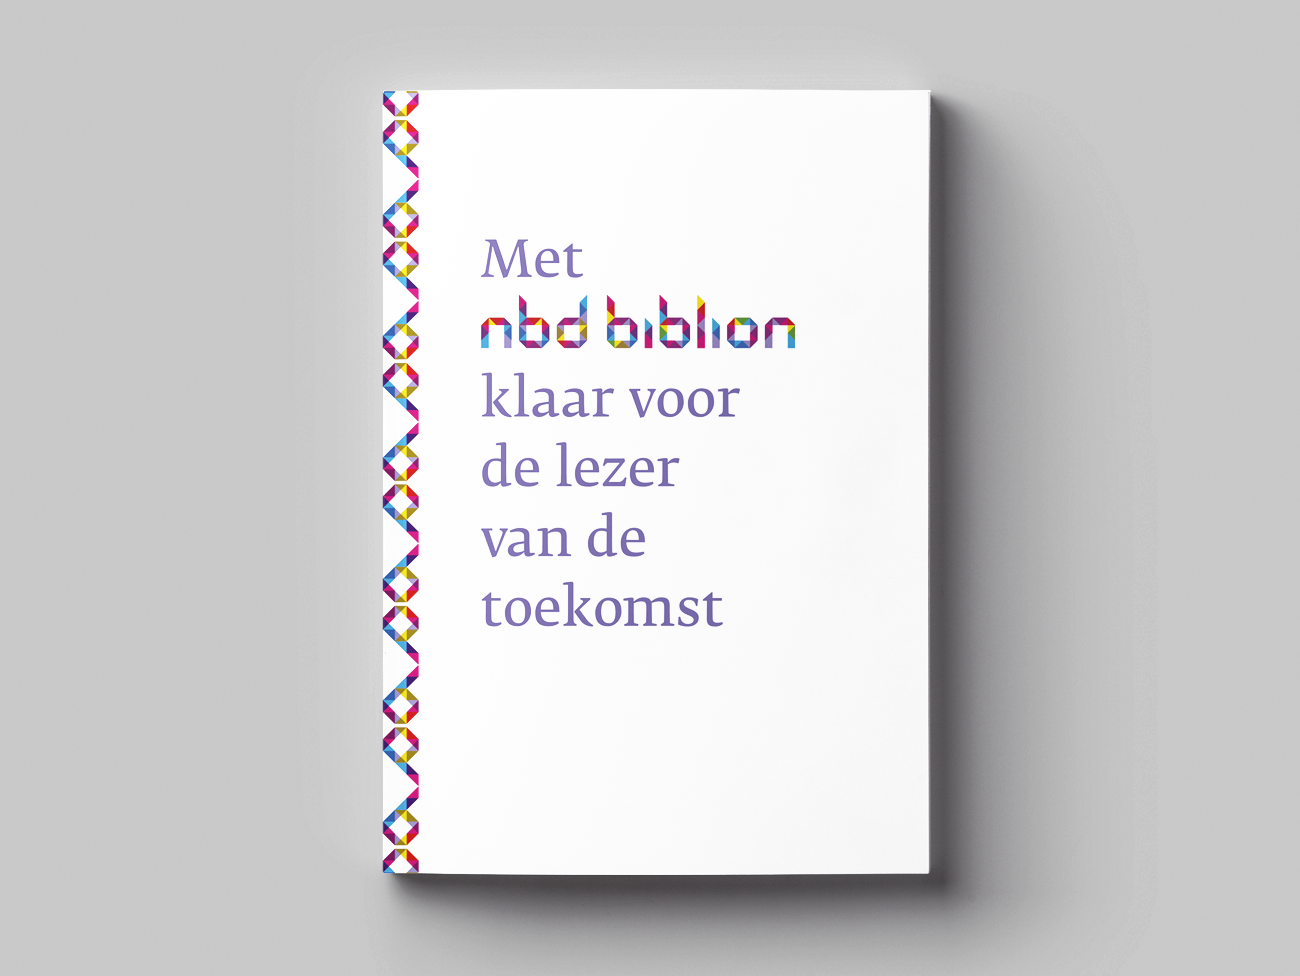 NBD Biblion, Studio Enkelvoud